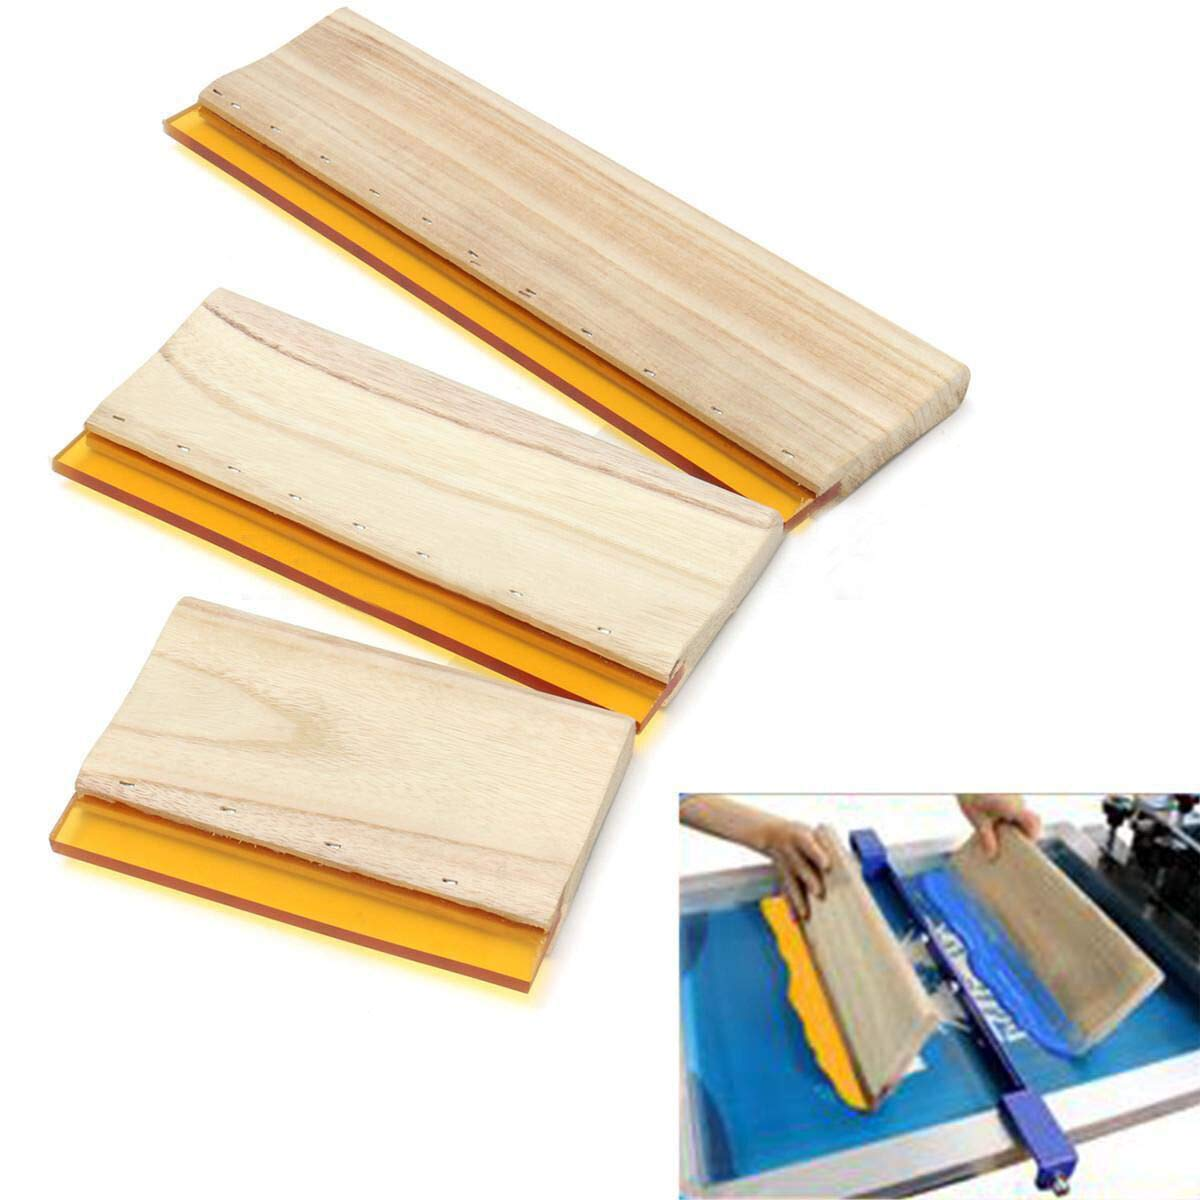 INTBUYING Screen Printing Squeegee Ink Squeegee Scraper 18 inches Long Wooden Scraper 65 Durometer 5.2 inches Wide